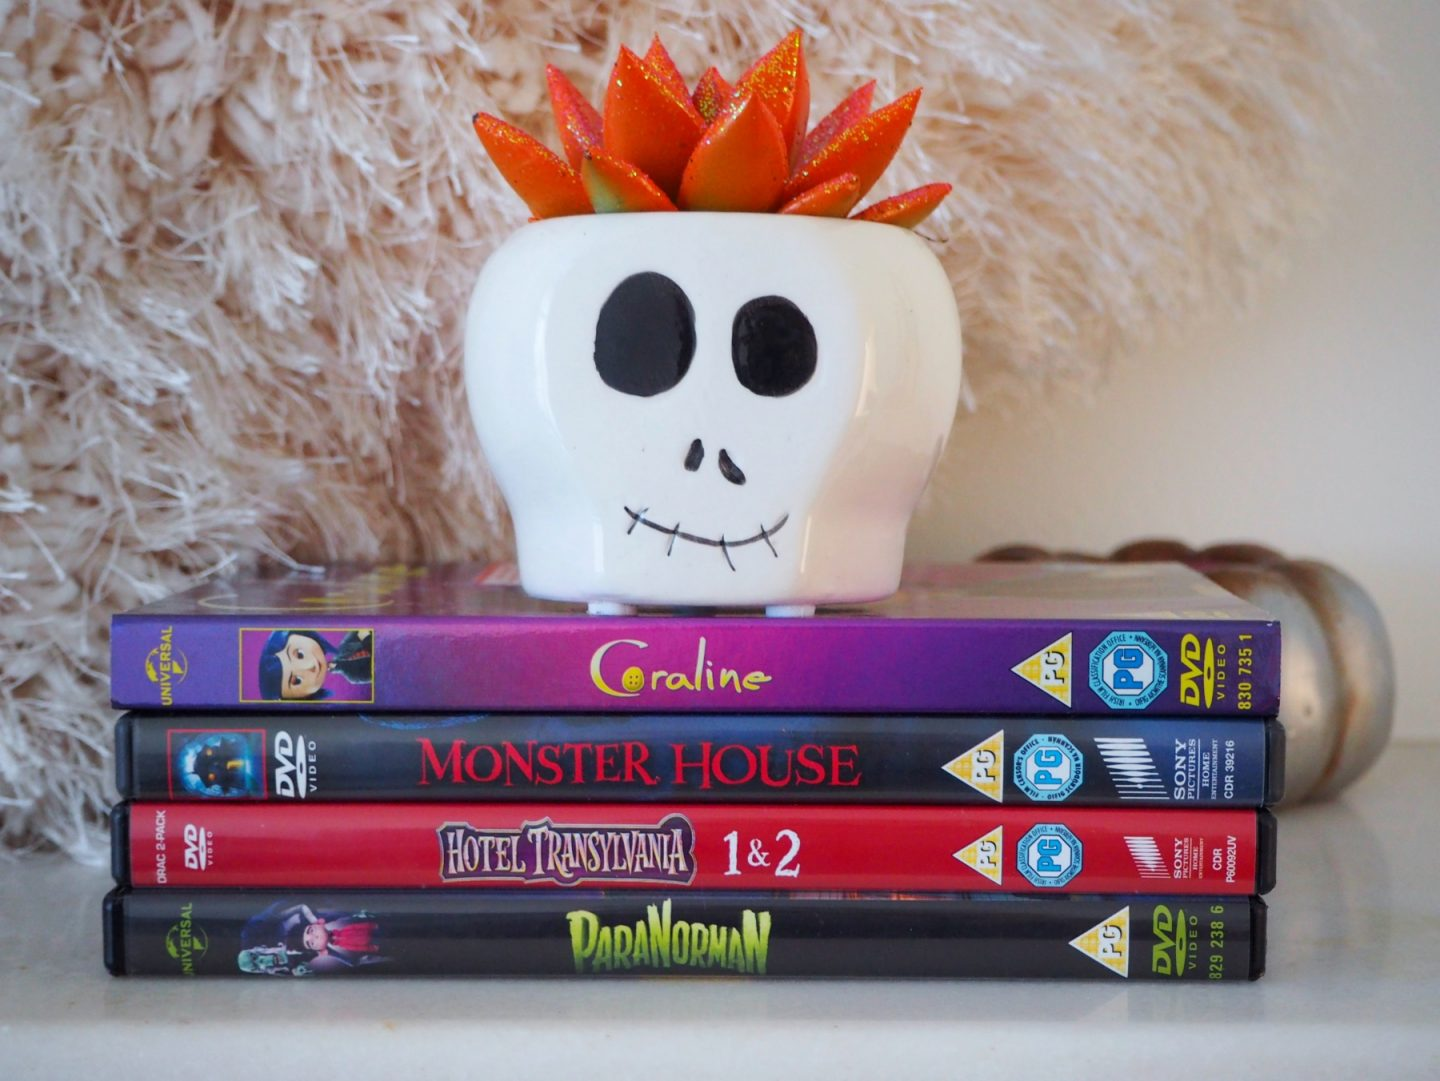 10 Halloween Movies If You Aren't A Fan Of Horror - dvd stack with skull succulent